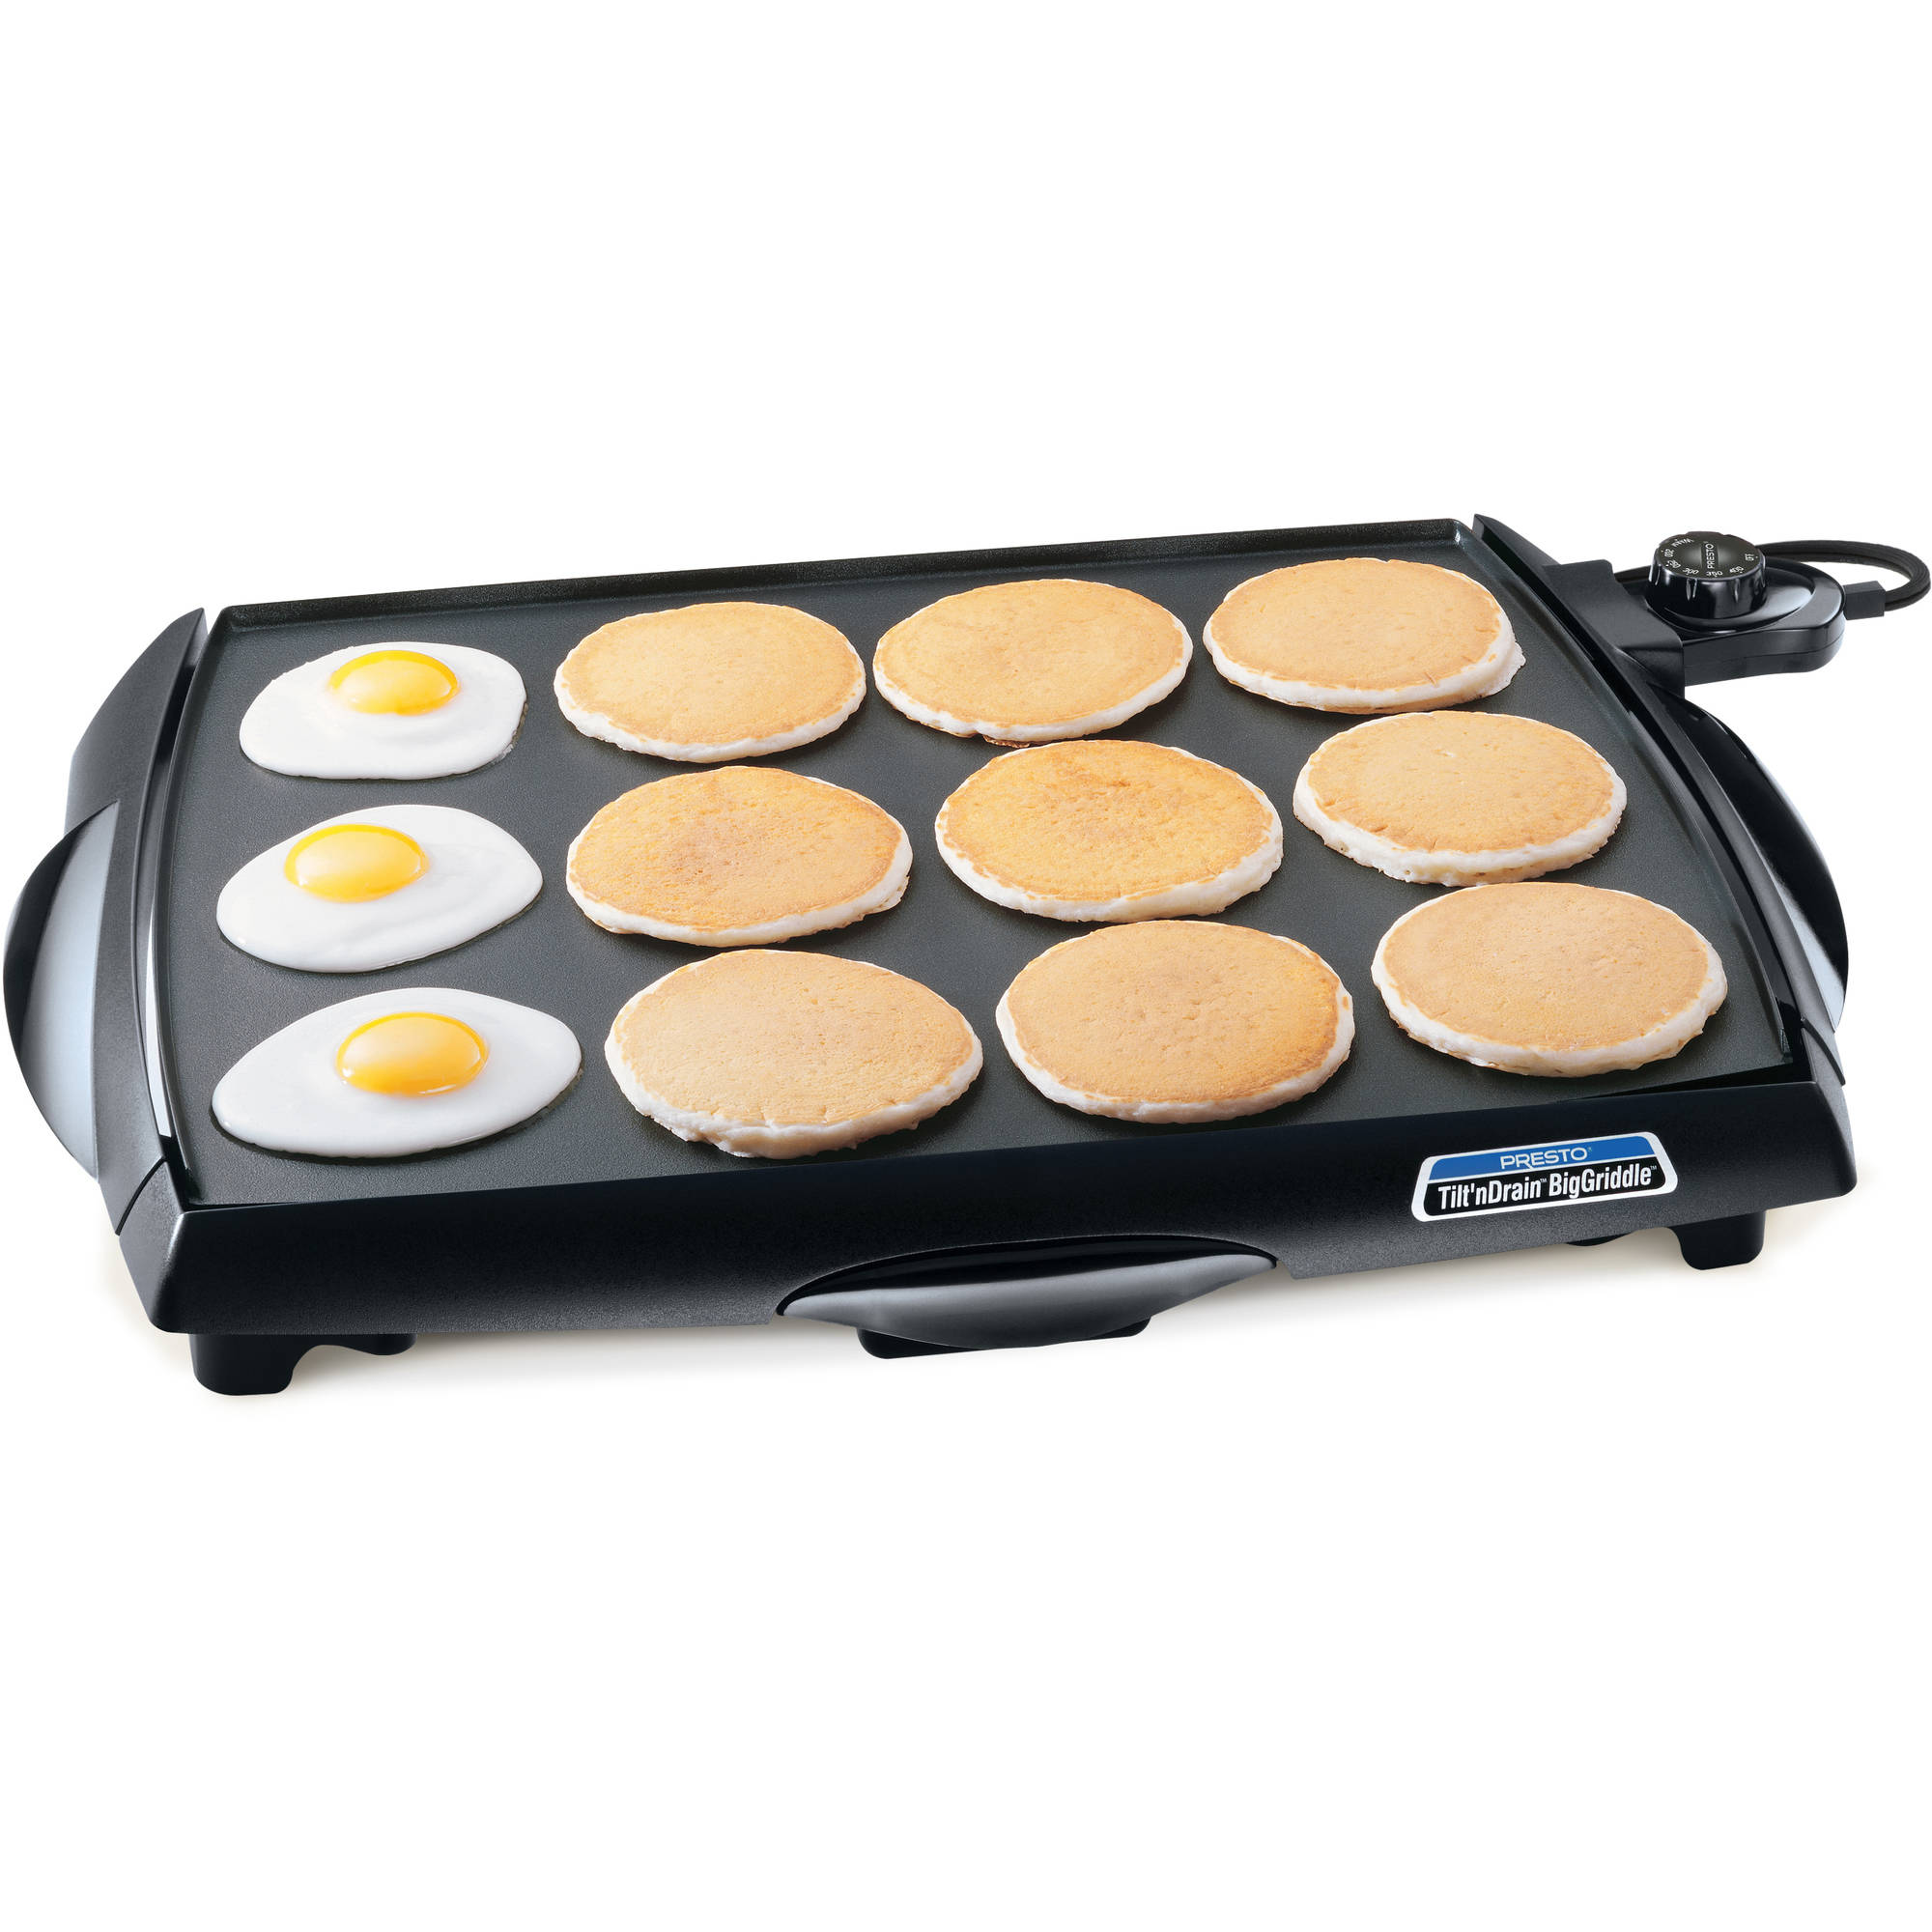 Presto Tilt'nDrain™ BigGriddle® cool-touch griddle